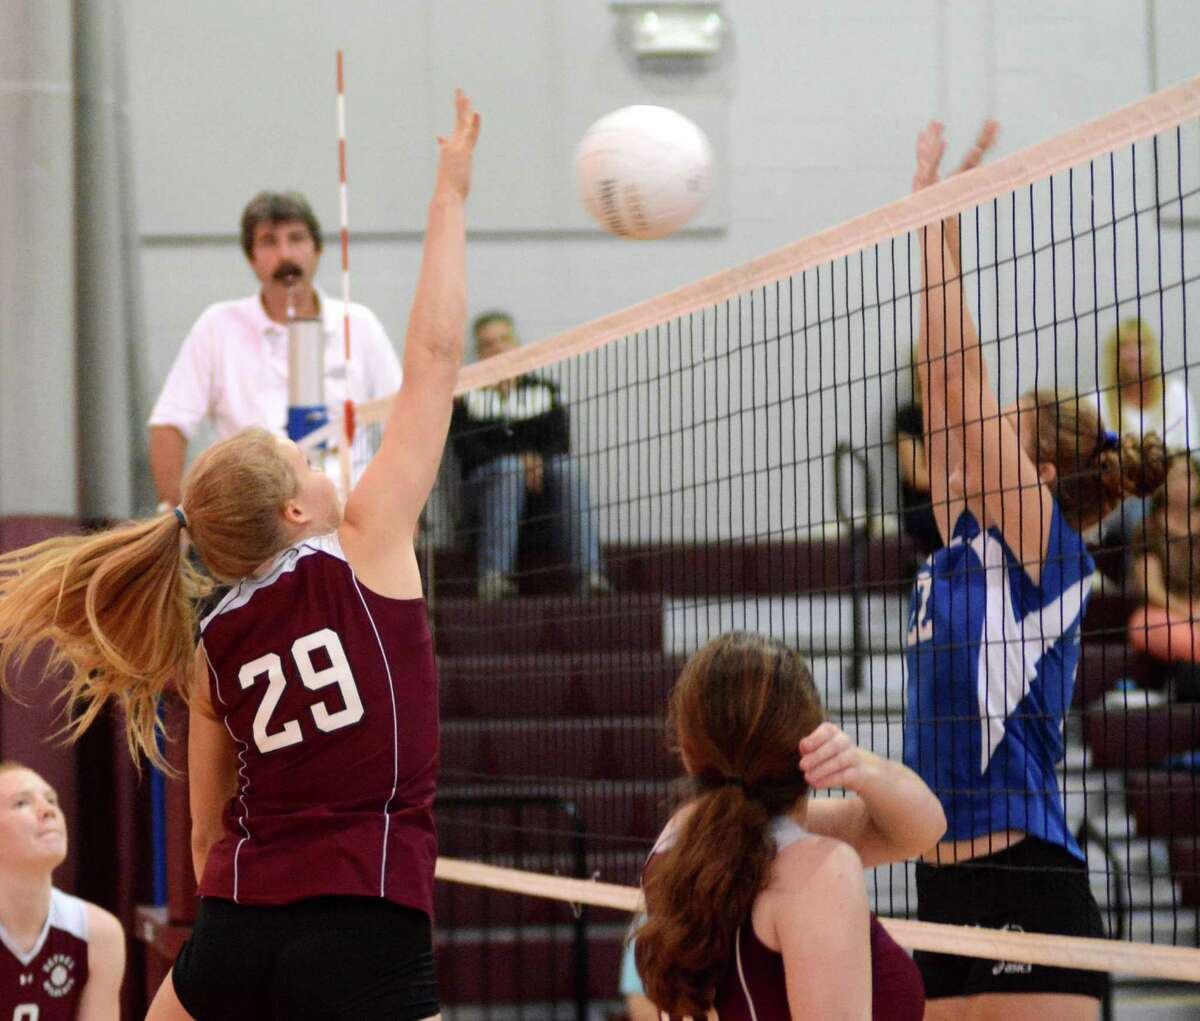 Bethel High Schools Morgan Schmid, left, reaches to block a shot against Brookfields Carolyn Marron during a volleyball game at Bethel on Monday Oct. 7, 2013.